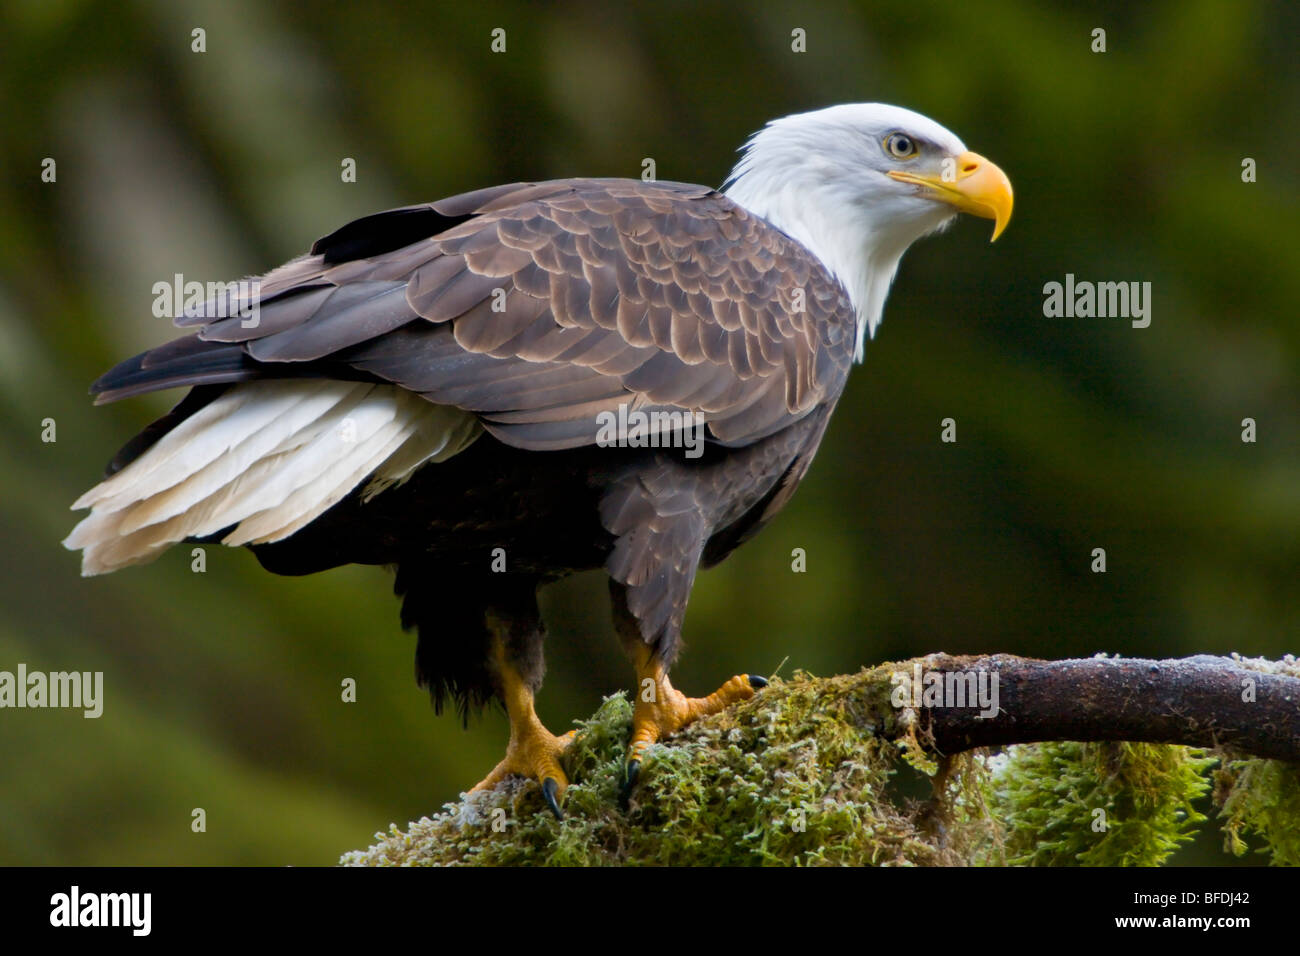 Bald eagle (Haliaeetus leucocephalus) perched on a mossy branch in Victoria, Vancouver Island, British Columbia, - Stock Image